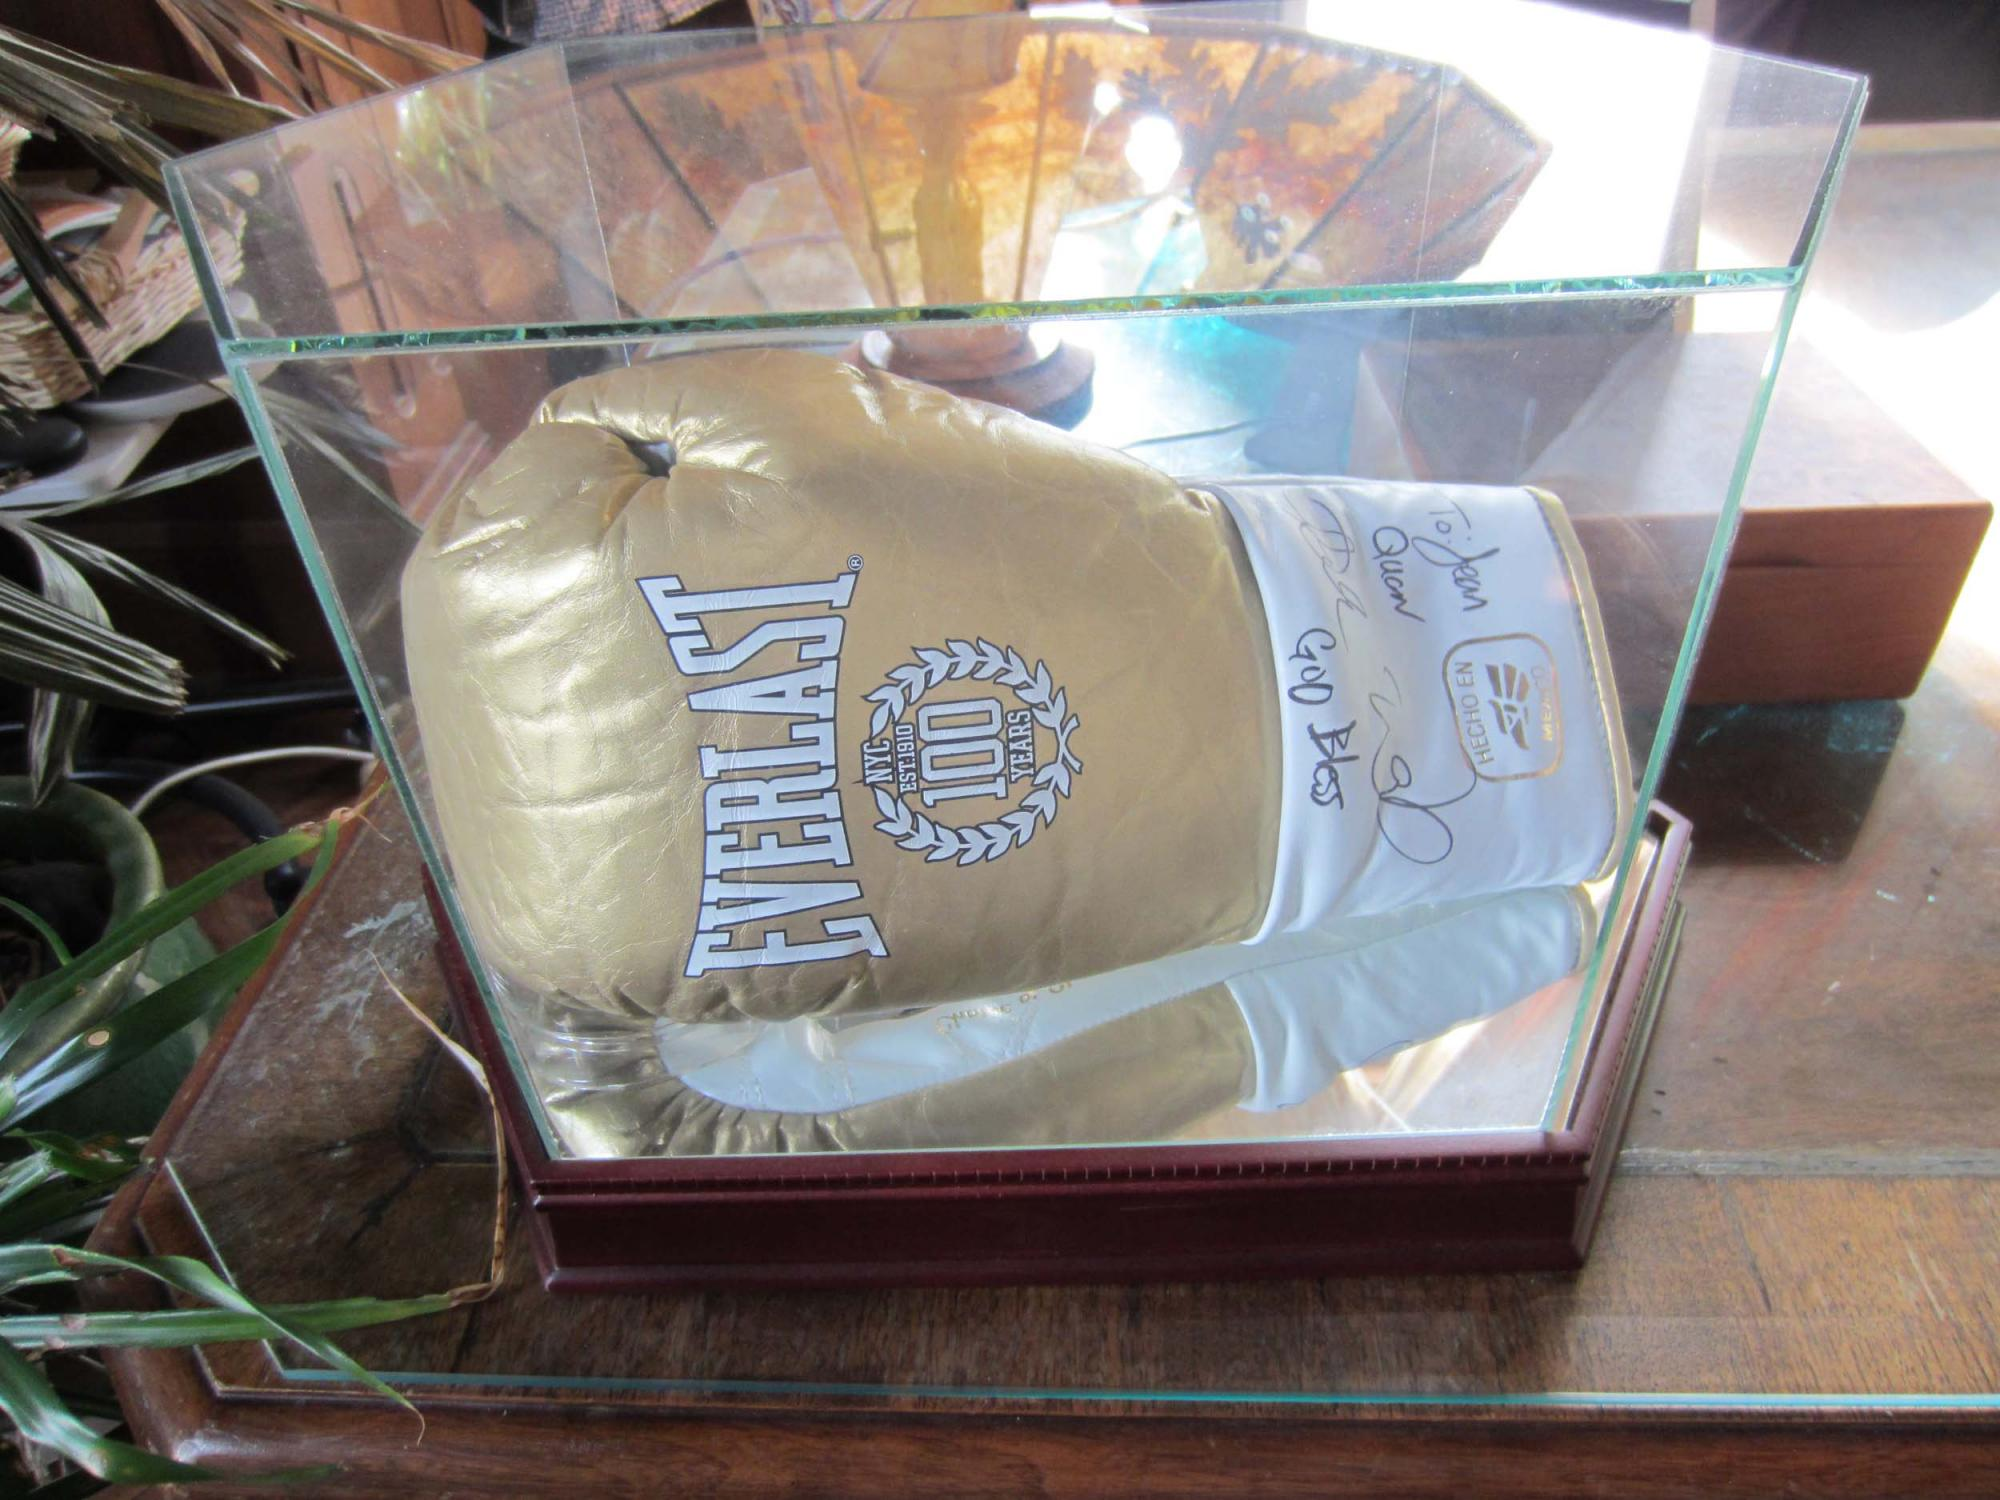 Boxing glove presented by Oakland Olympic gold medalist Andre Ward to Mayor Jean Quan.